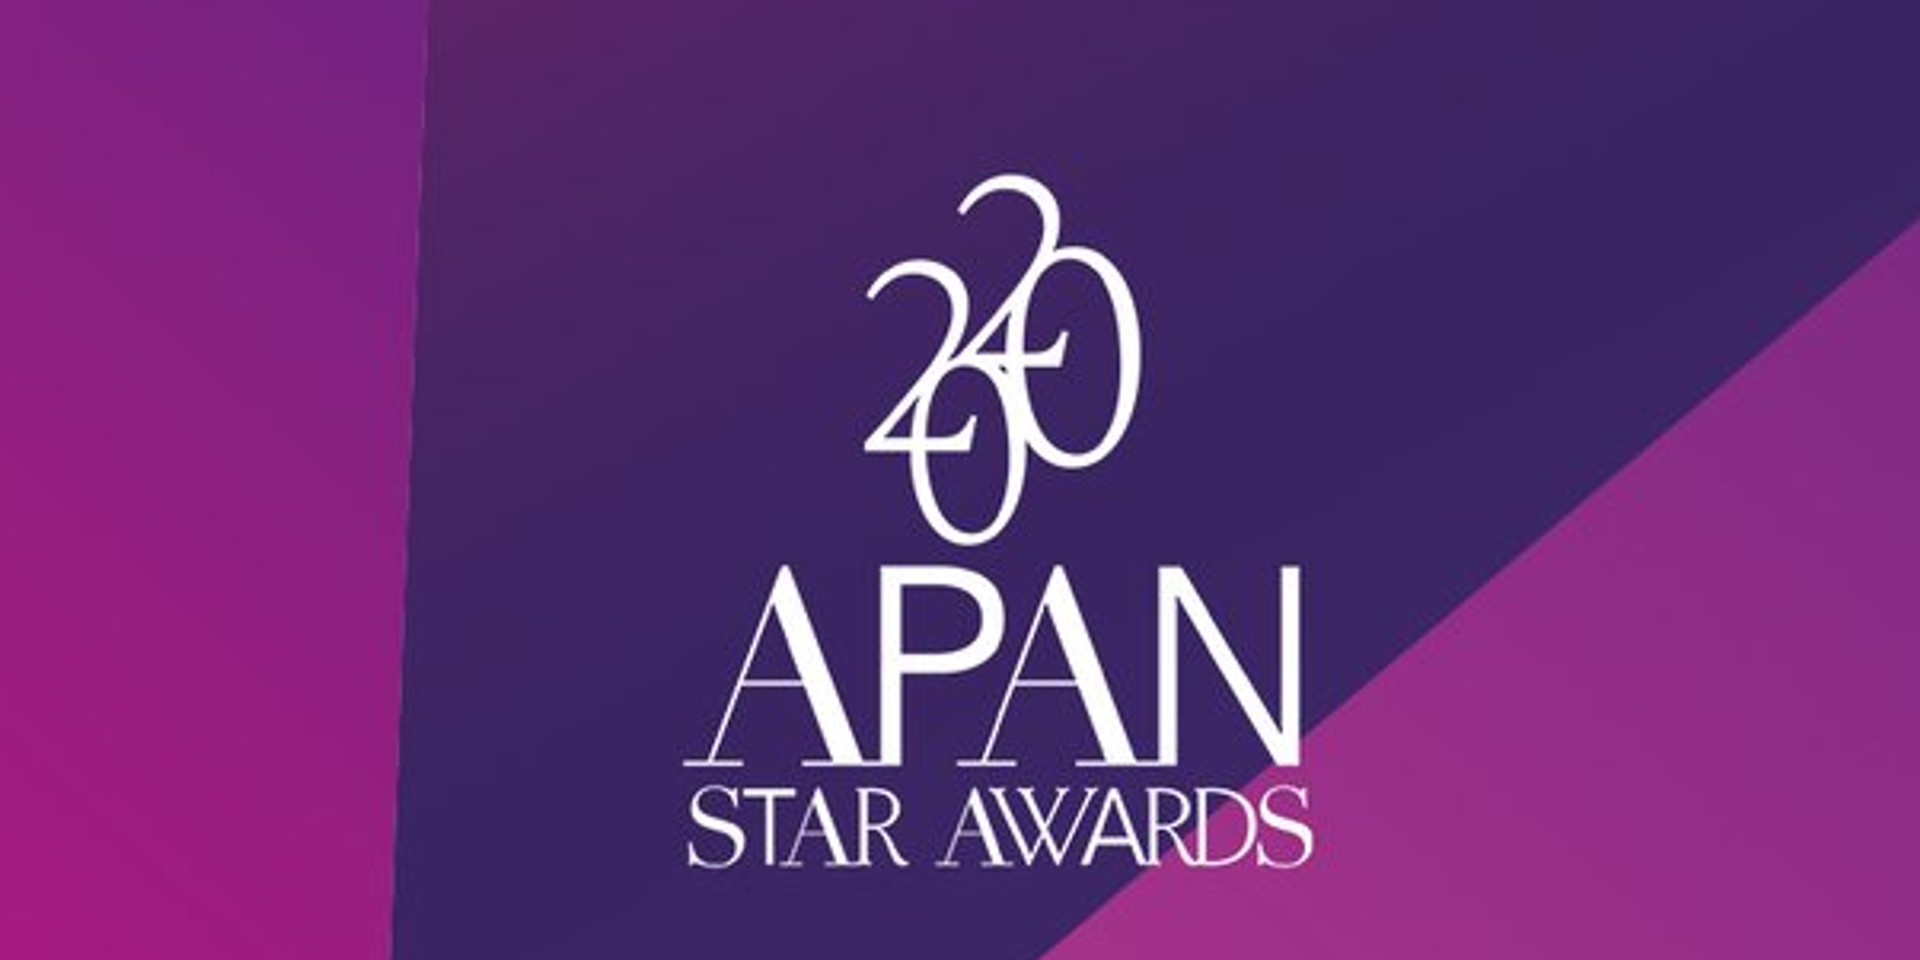 Here's how to watch the 2020 APAN Awards